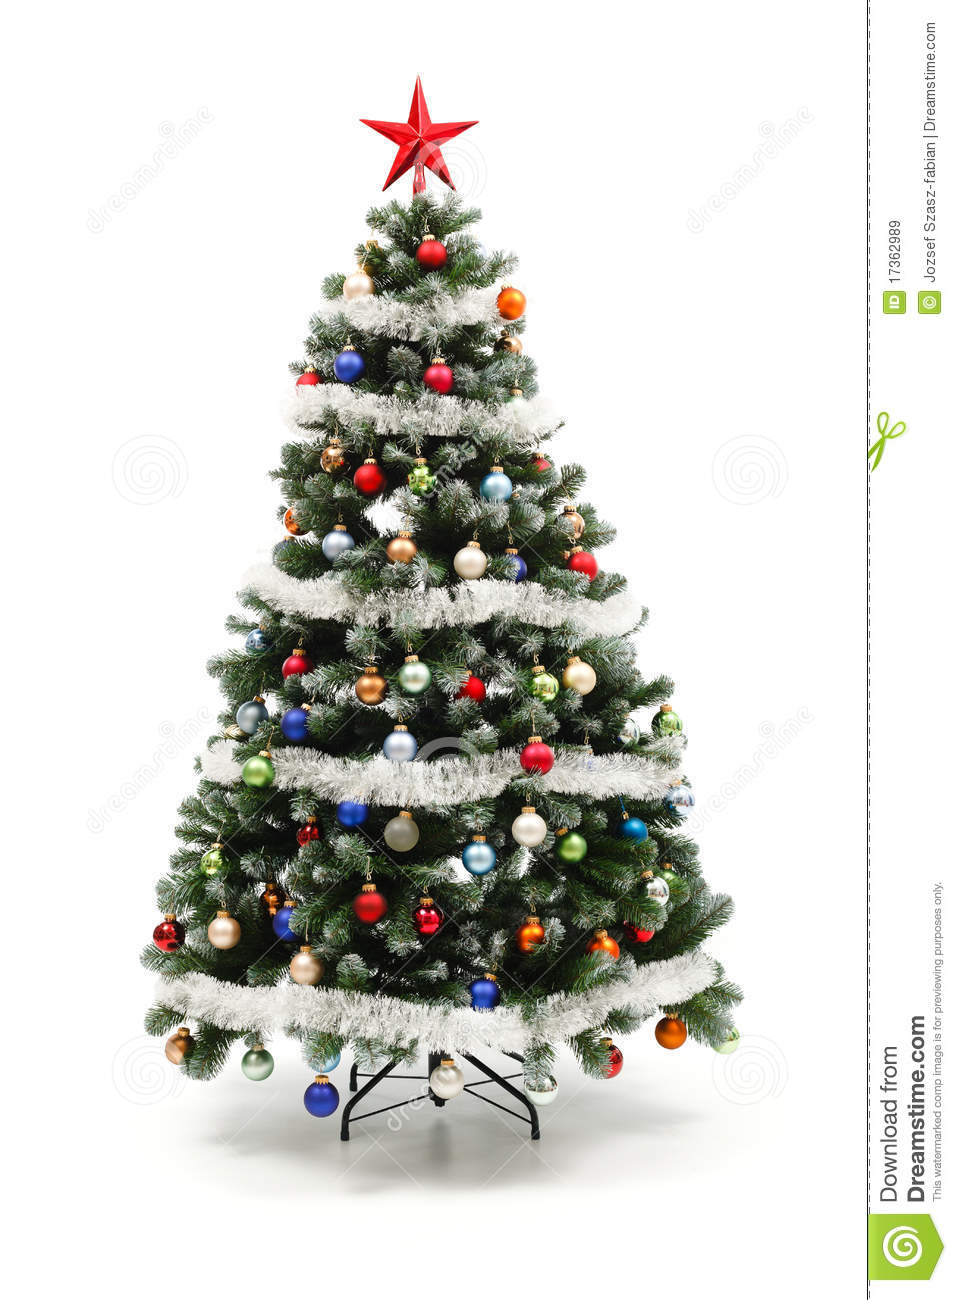 colorful decorated artificial christmas tree - Decorated Artificial Christmas Trees